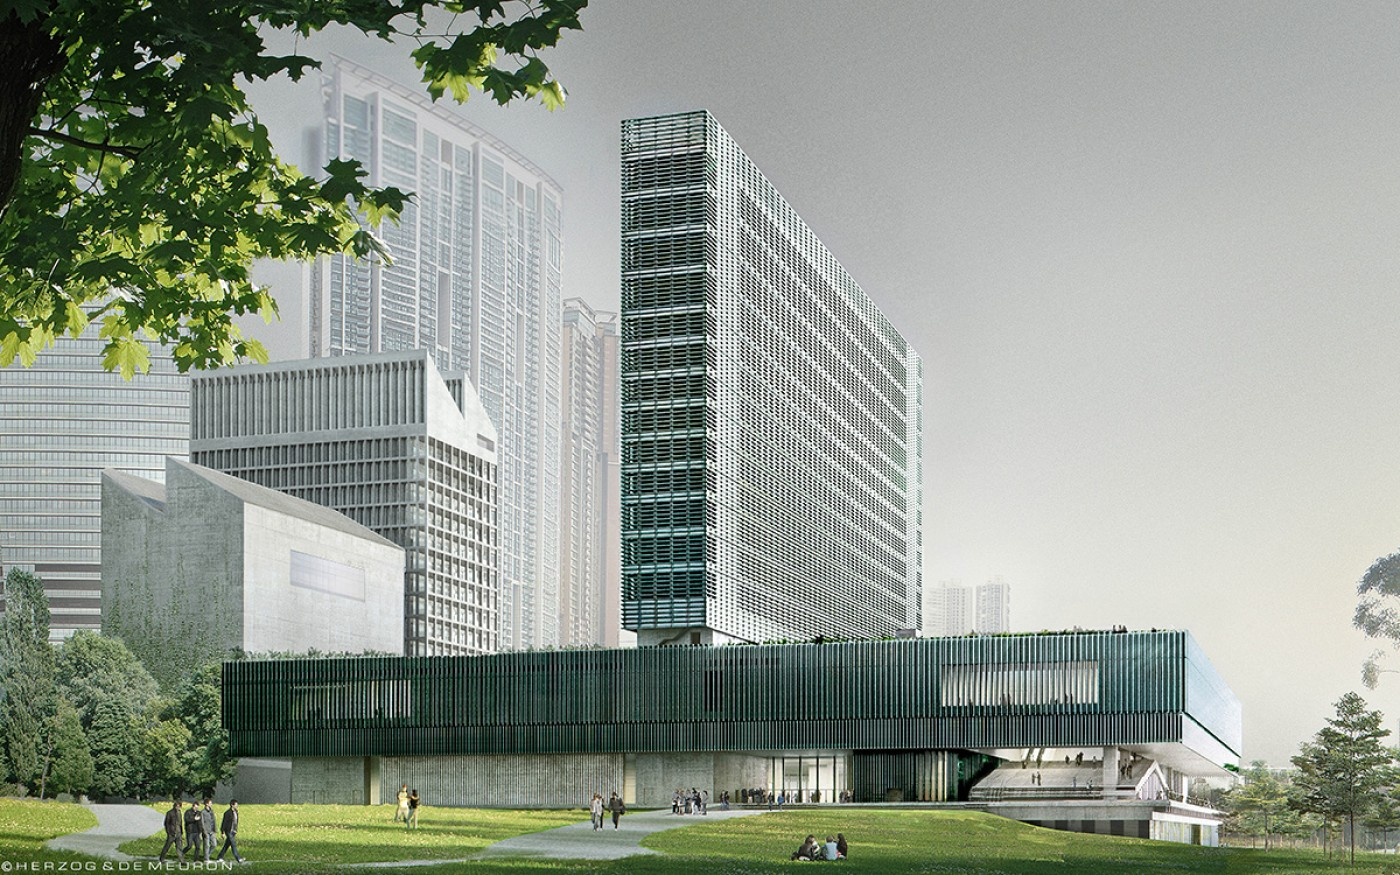 Pictured: M+, Hong Kong (image courtesy of West Kowloon Cultural District Authority and M+, Hong Kong)